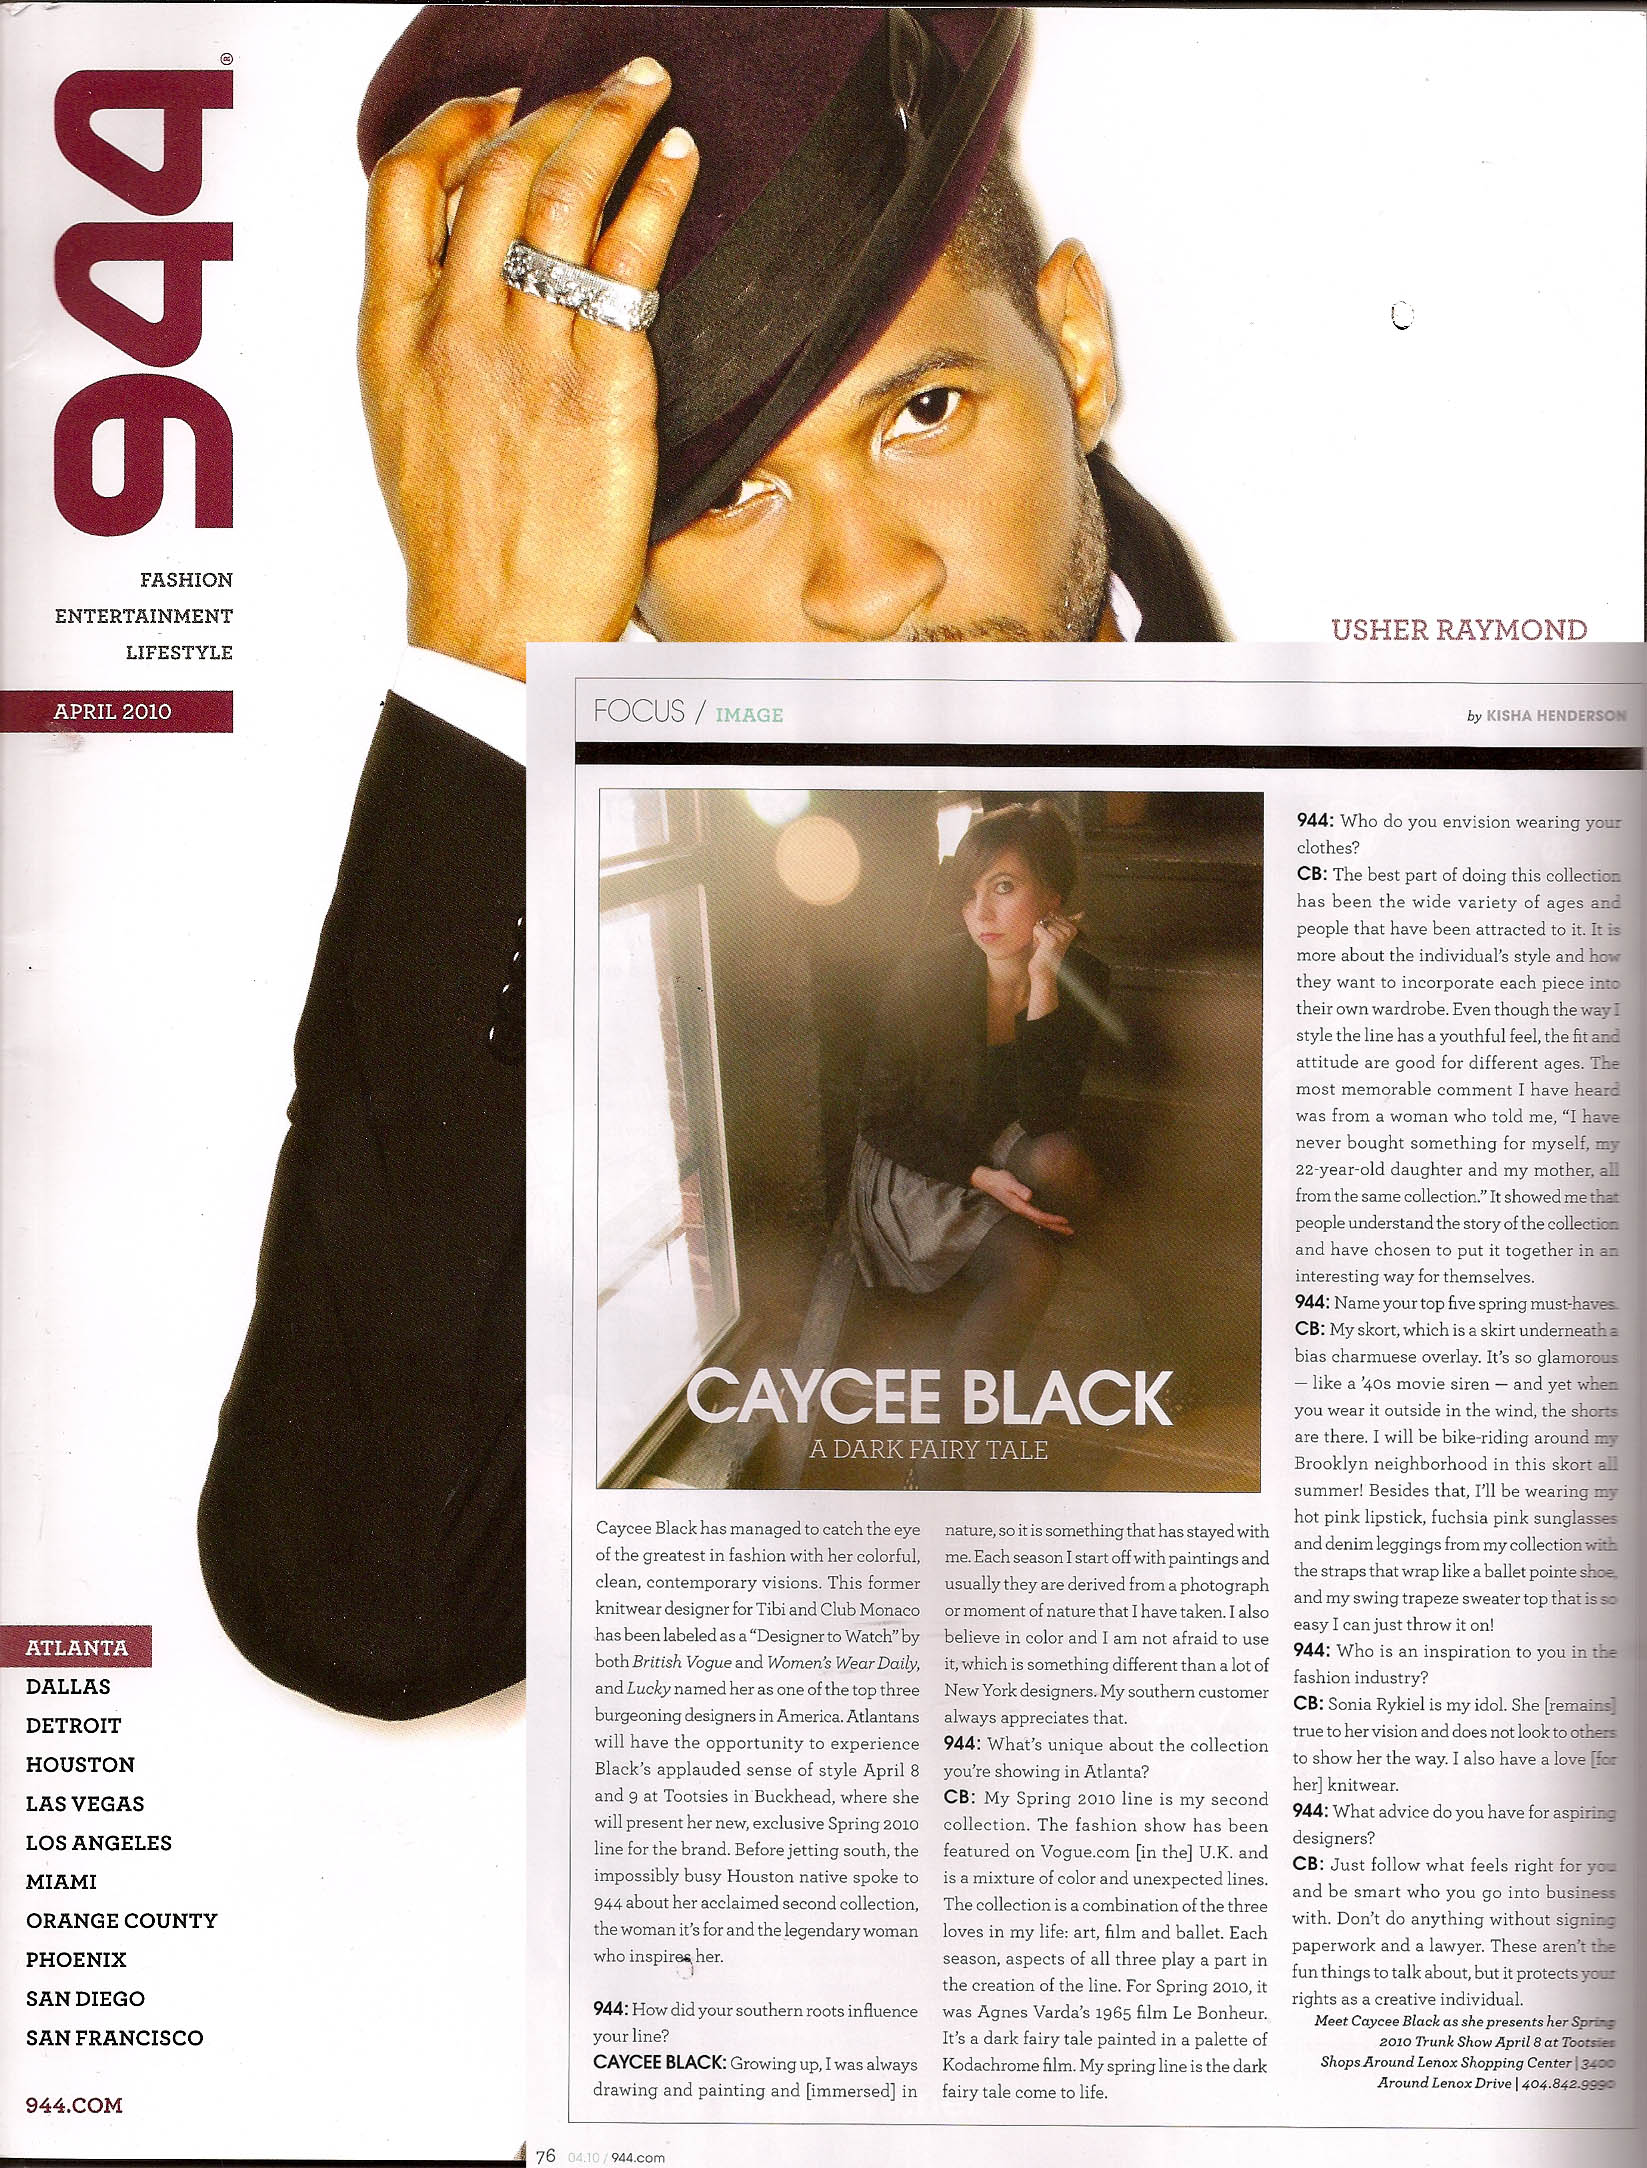 Contemporary Fashion Design - Caycee Black Collection - Usher